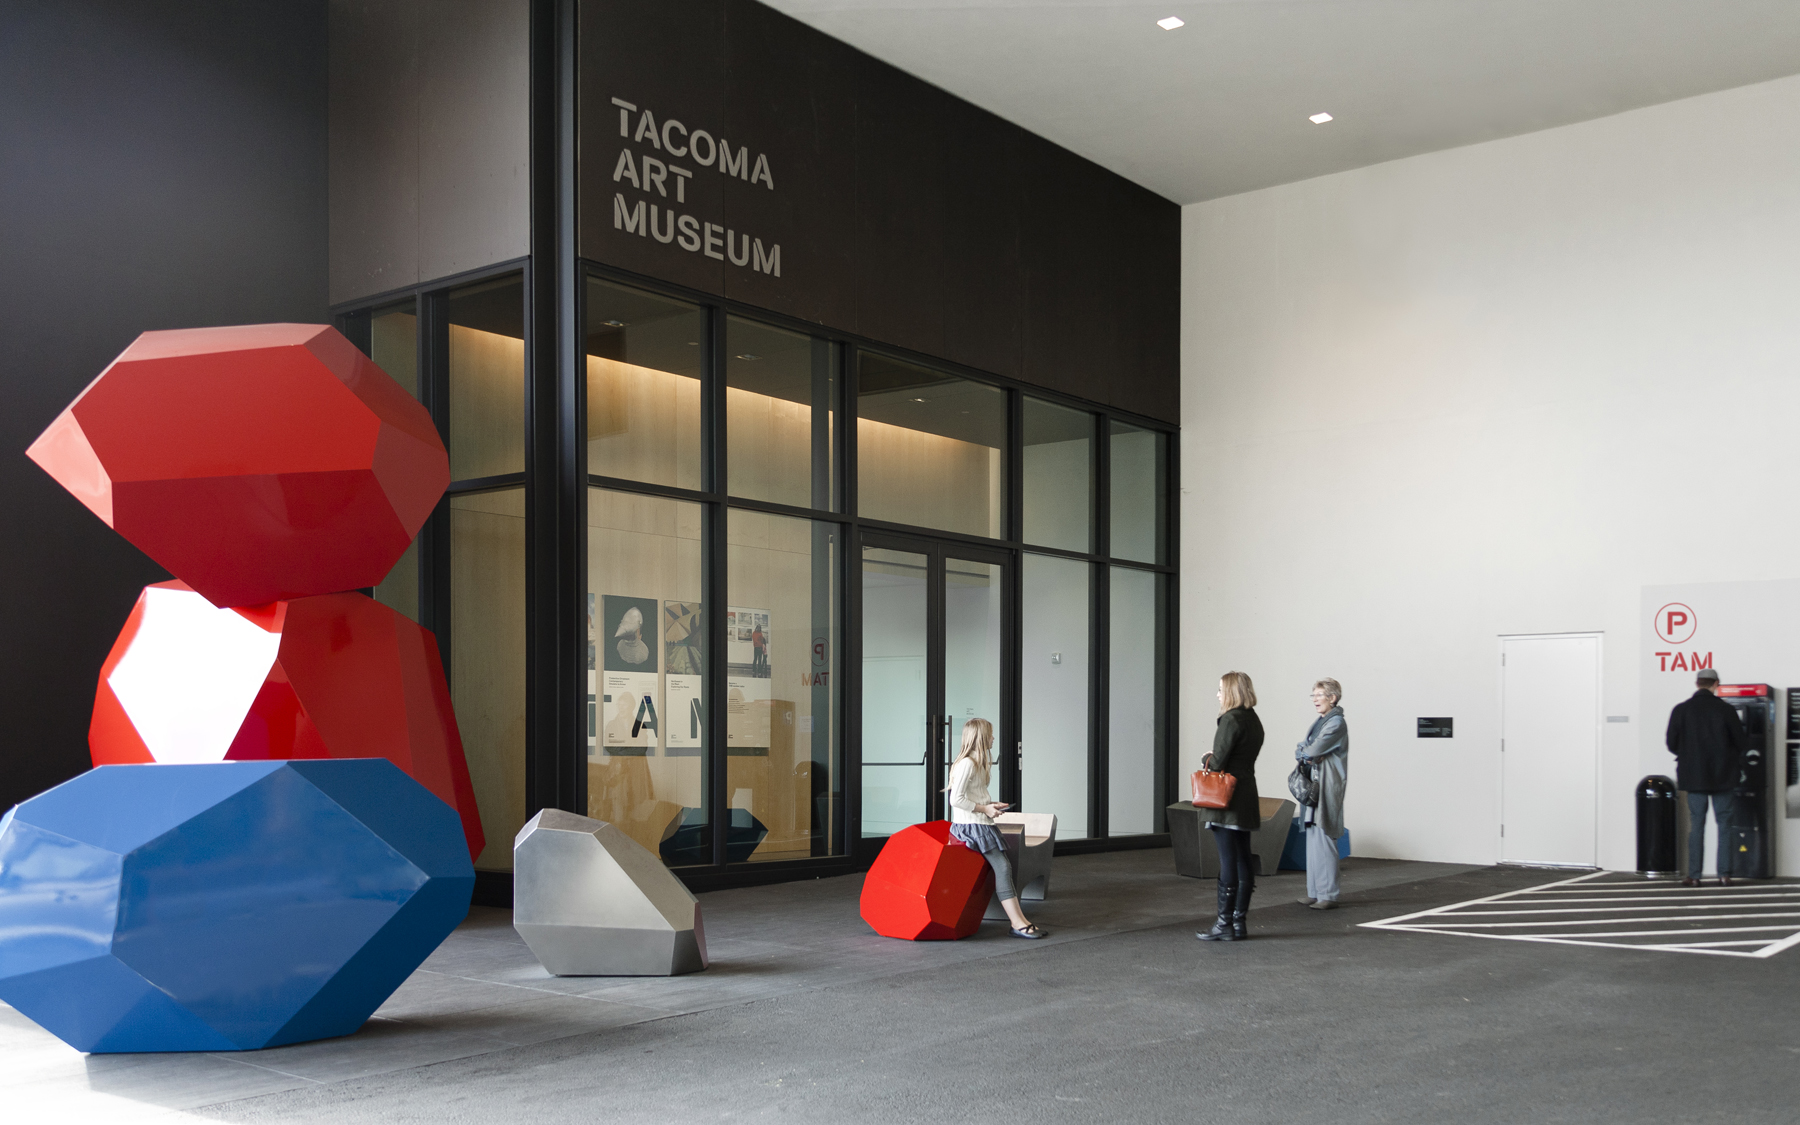 the impact of tacoma art museum in the community Tacoma art museum, tacoma  12 hours left to have your donation create an even bigger impact our staff shares why they love art support art in our community.